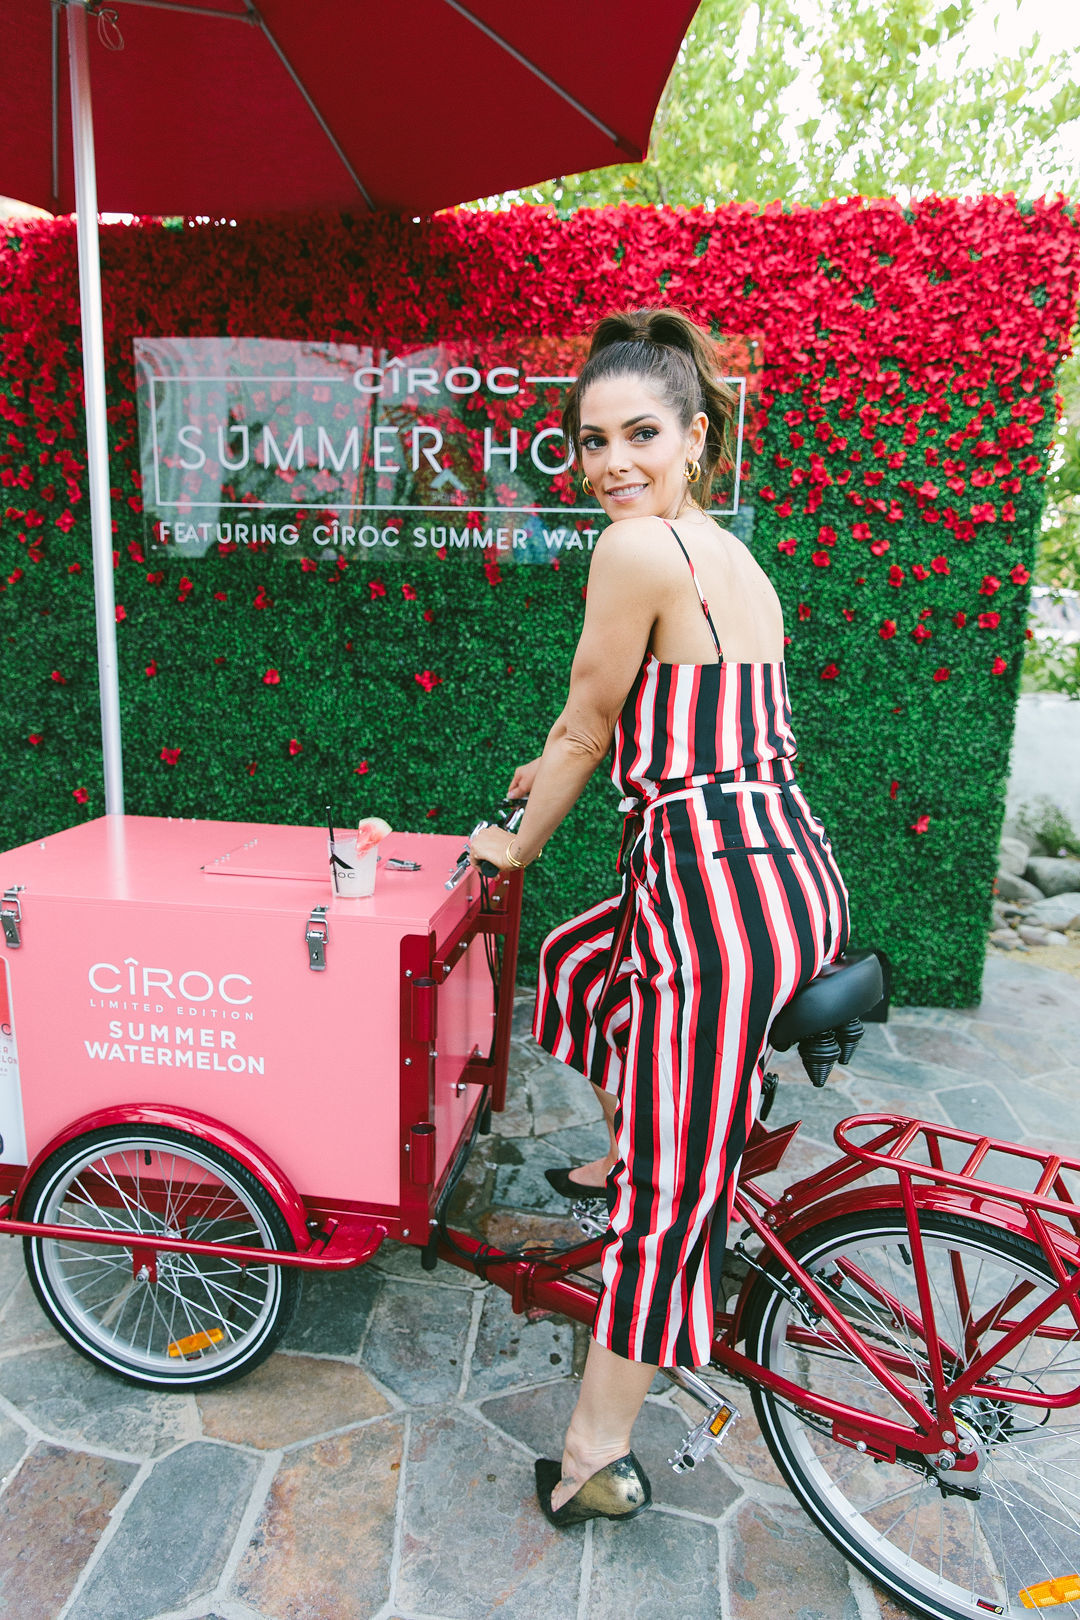 Ashley Greene visits the CÎROC Summer House with CÎROC Limited Edition Summer Watermelon during Coachella at Korakia Pensione in Palm Springs, California, on April 12, 2019.